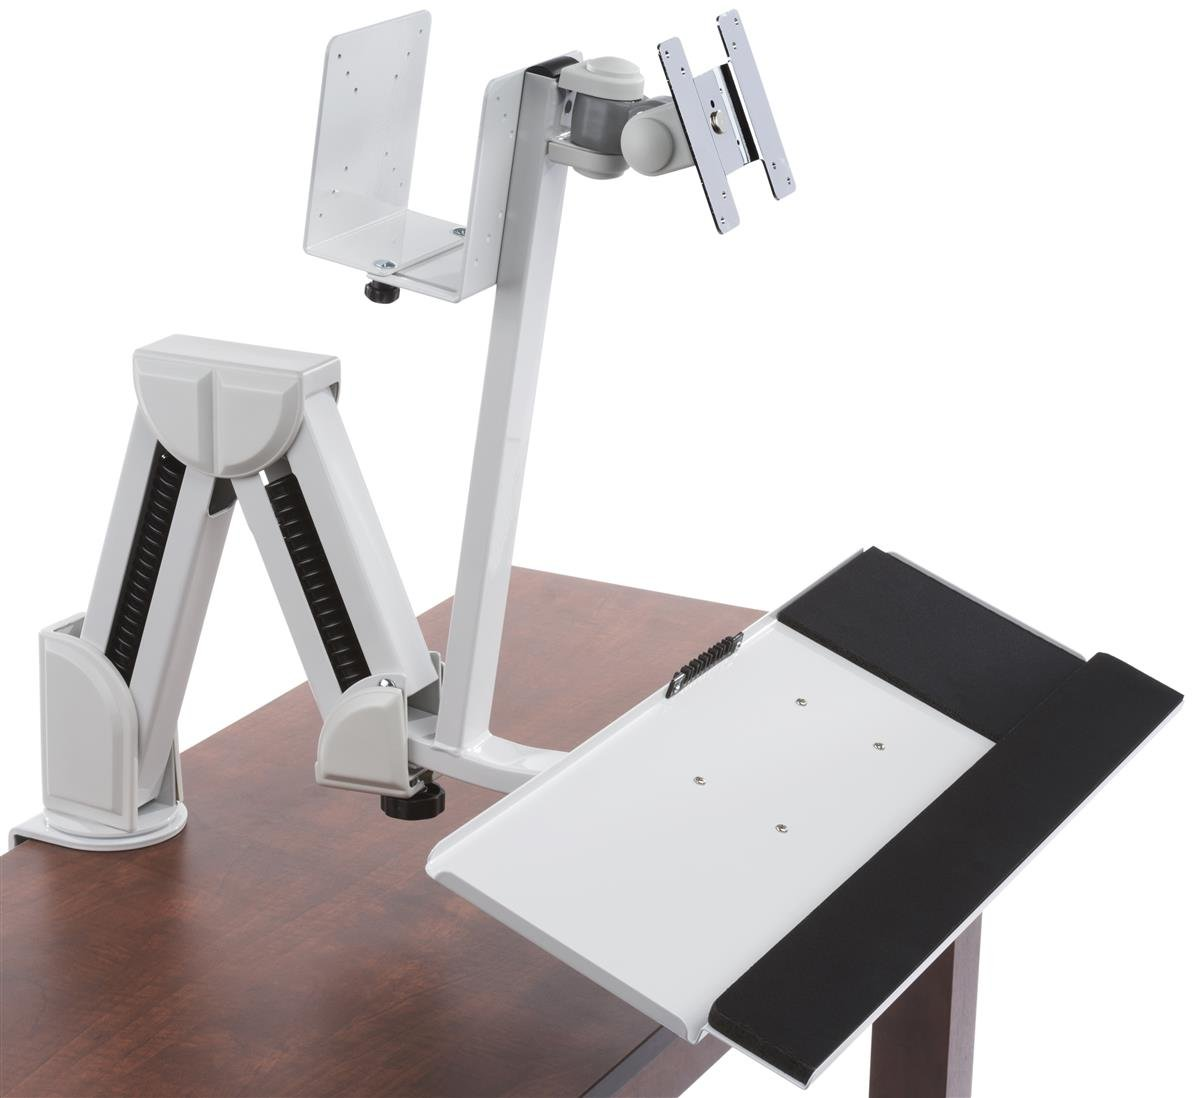 Displays2go Articulating Monitor & Tablet Work Station, Mounts on Counter or Wall, Steel & Aluminum Construction – White (DWSSW02WT) by Displays2go